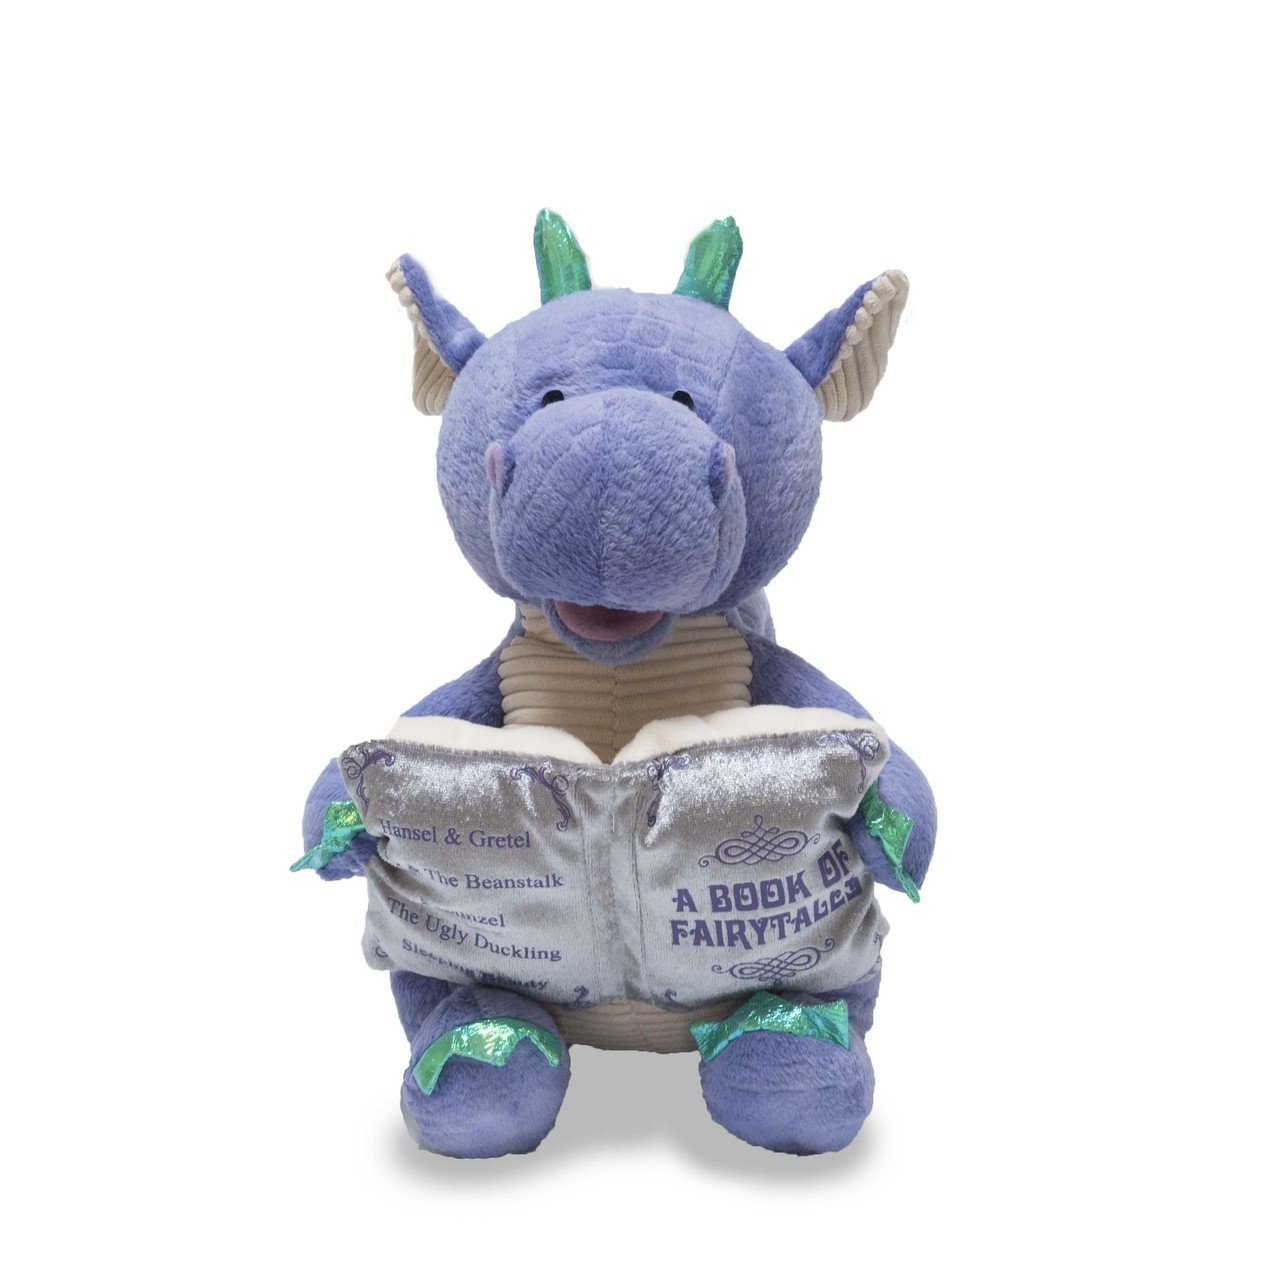 Cuddle Barn   Dalton the Storytelling Dragon 12'' Animated Stuffed Animal Plush Toy   Mouth Moves, Head Sways and Book Lights Up   Recites 5 Fairy-Tales by Cuddle Barn